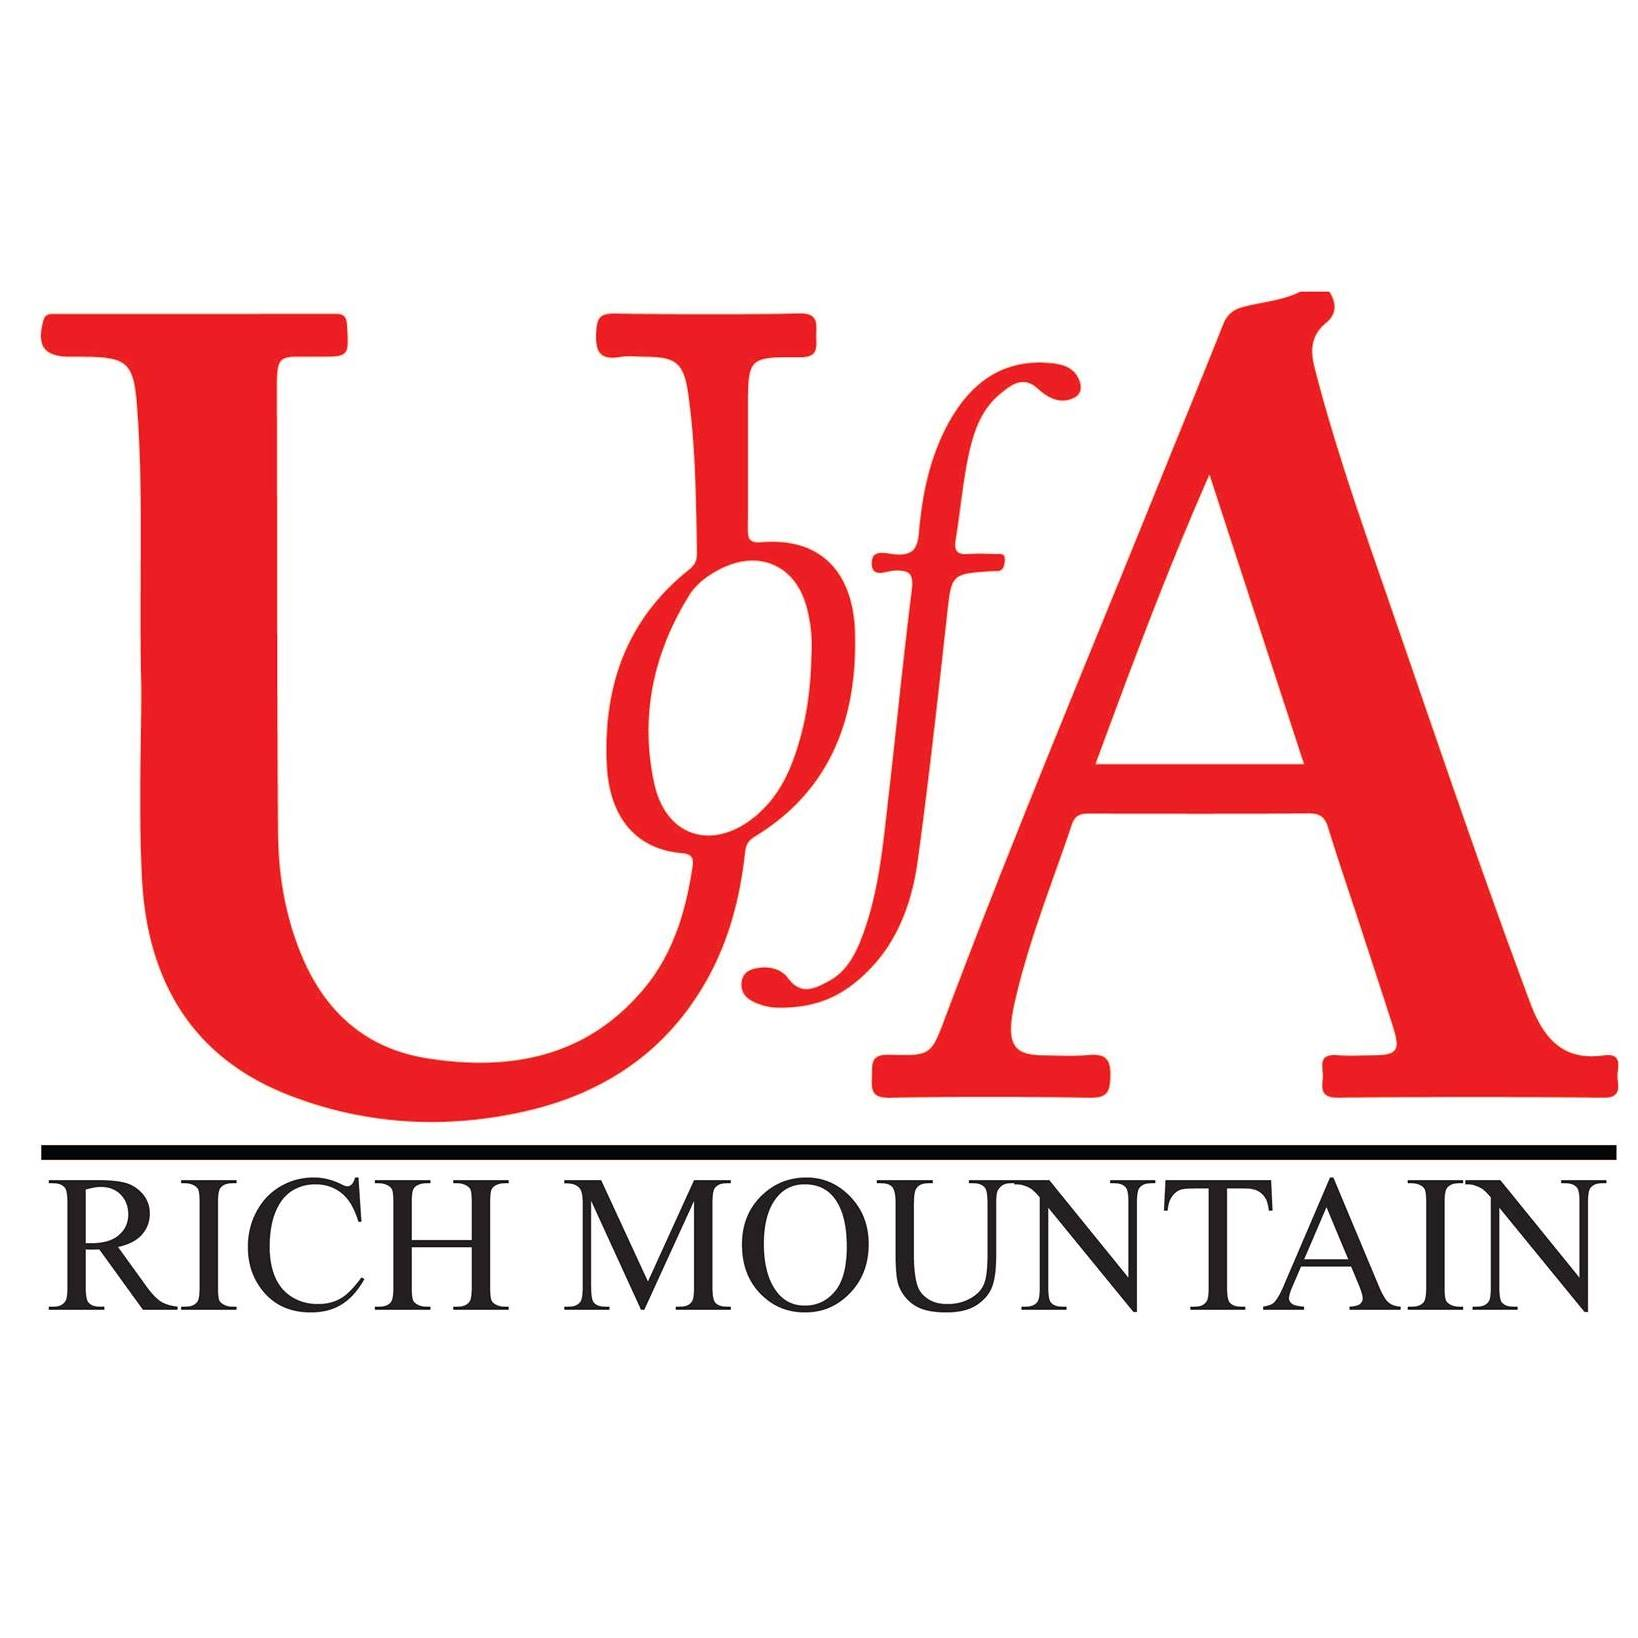 University of Arkansas Rich Mountain - Department of Nursing 1100 College DriveMena, AR 71953 Phone: 479.394.7622 Ext. 1366 Fax: 479.394.2828